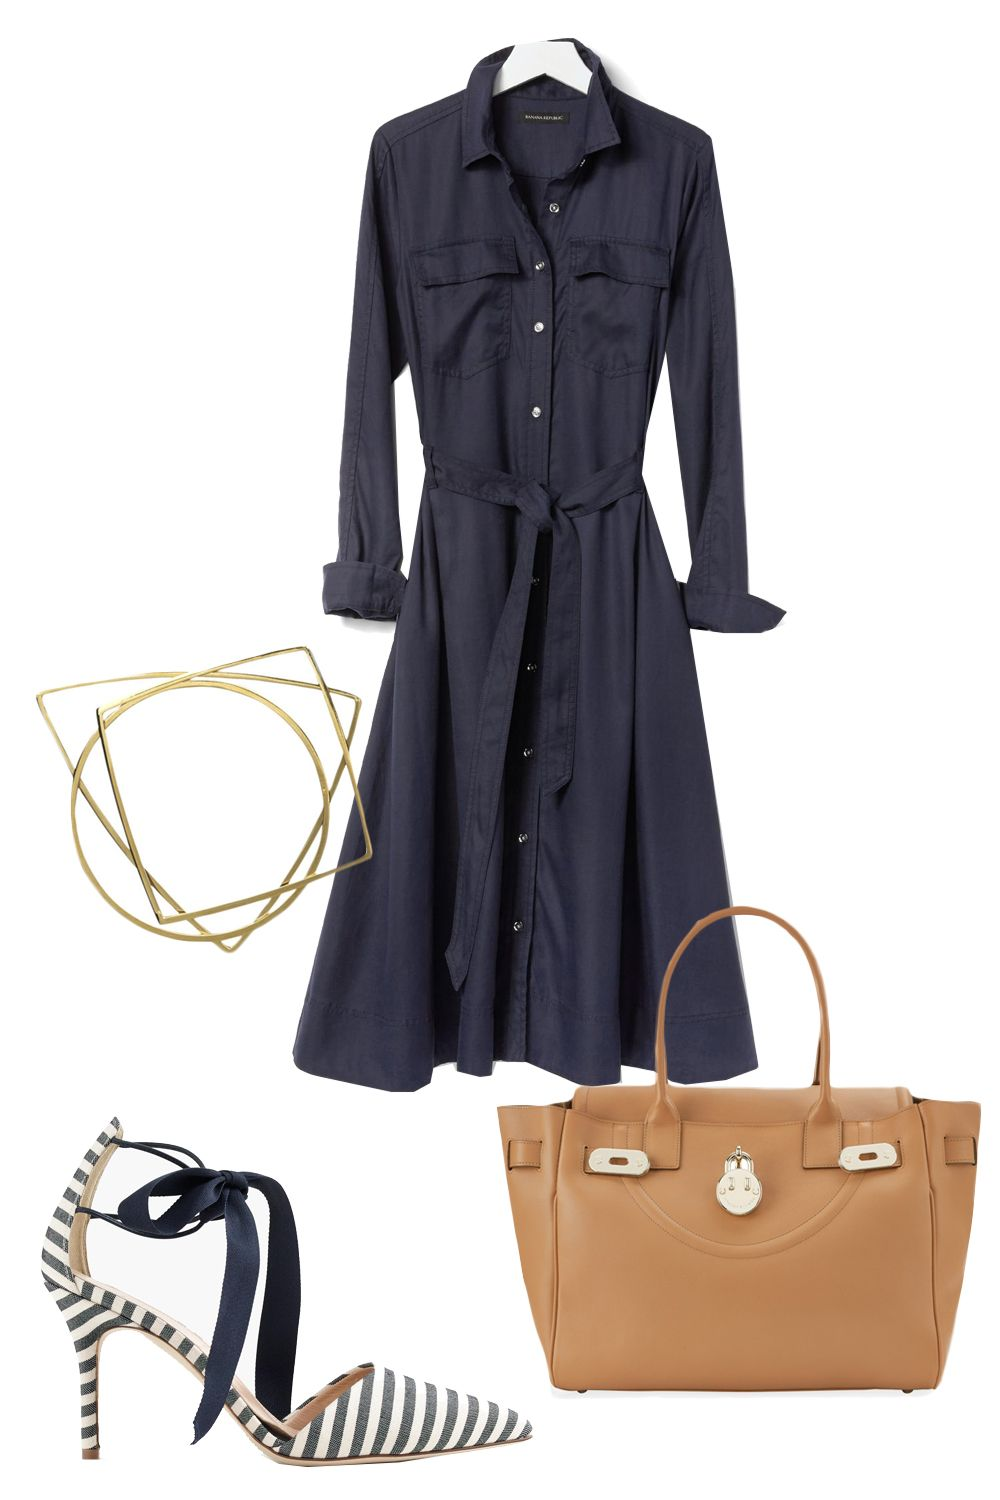 "<p>After the weekend, there's no better way to approach the beginning of the week than with a shirtdress. They were essentially <em>made </em><span class=""redactor-invisible-space"">for Mondays. All you need to do is add accessories to the easy one-and-done item. <span class=""redactor-invisible-space""></span></span></p><p>Banana Republic Midi Shirtdress, $138; <a href=""http://bananarepublic.gap.com/browse/product.do?cid=1038594&vid=1&pid=183925002"" target=""_blank"">bananarepublic.com</a></p><p><a href=""http://bananarepublic.gap.com/browse/product.do?cid=1038594&vid=1&pid=183925002"" target=""_blank""></a>Hill & Friends Happy Handbag, £1,295; <a href=""https://www.hillandfriends.com/shop/happy-handbag-toffee-gold/"" target=""_blank"">hillandfriends.com</a></p><p><a href=""https://www.hillandfriends.com/shop/happy-handbag-toffee-gold/"" target=""_blank""></a>J. Crew Elsie Bow-Tie Pumps, $278; <a href=""https://www.jcrew.com/womens_category/shoes/pumpsandheels/PRDOVR~E7258/E7258.jsp"" target=""_blank"">jcrew.com</a></p><p>By Malene Birger Figuree Bangles, £95; <a href=""http://www.bymalenebirger.com/gb/jewellery/figuree-bangles-Q57095029.html?cgid=Wc1364786&dwvar_Q57095029_color=002&dwvar_Q57095029_size=ONE#!start=4"" target=""_blank"">bymalenebirger.com</a><br></p>"